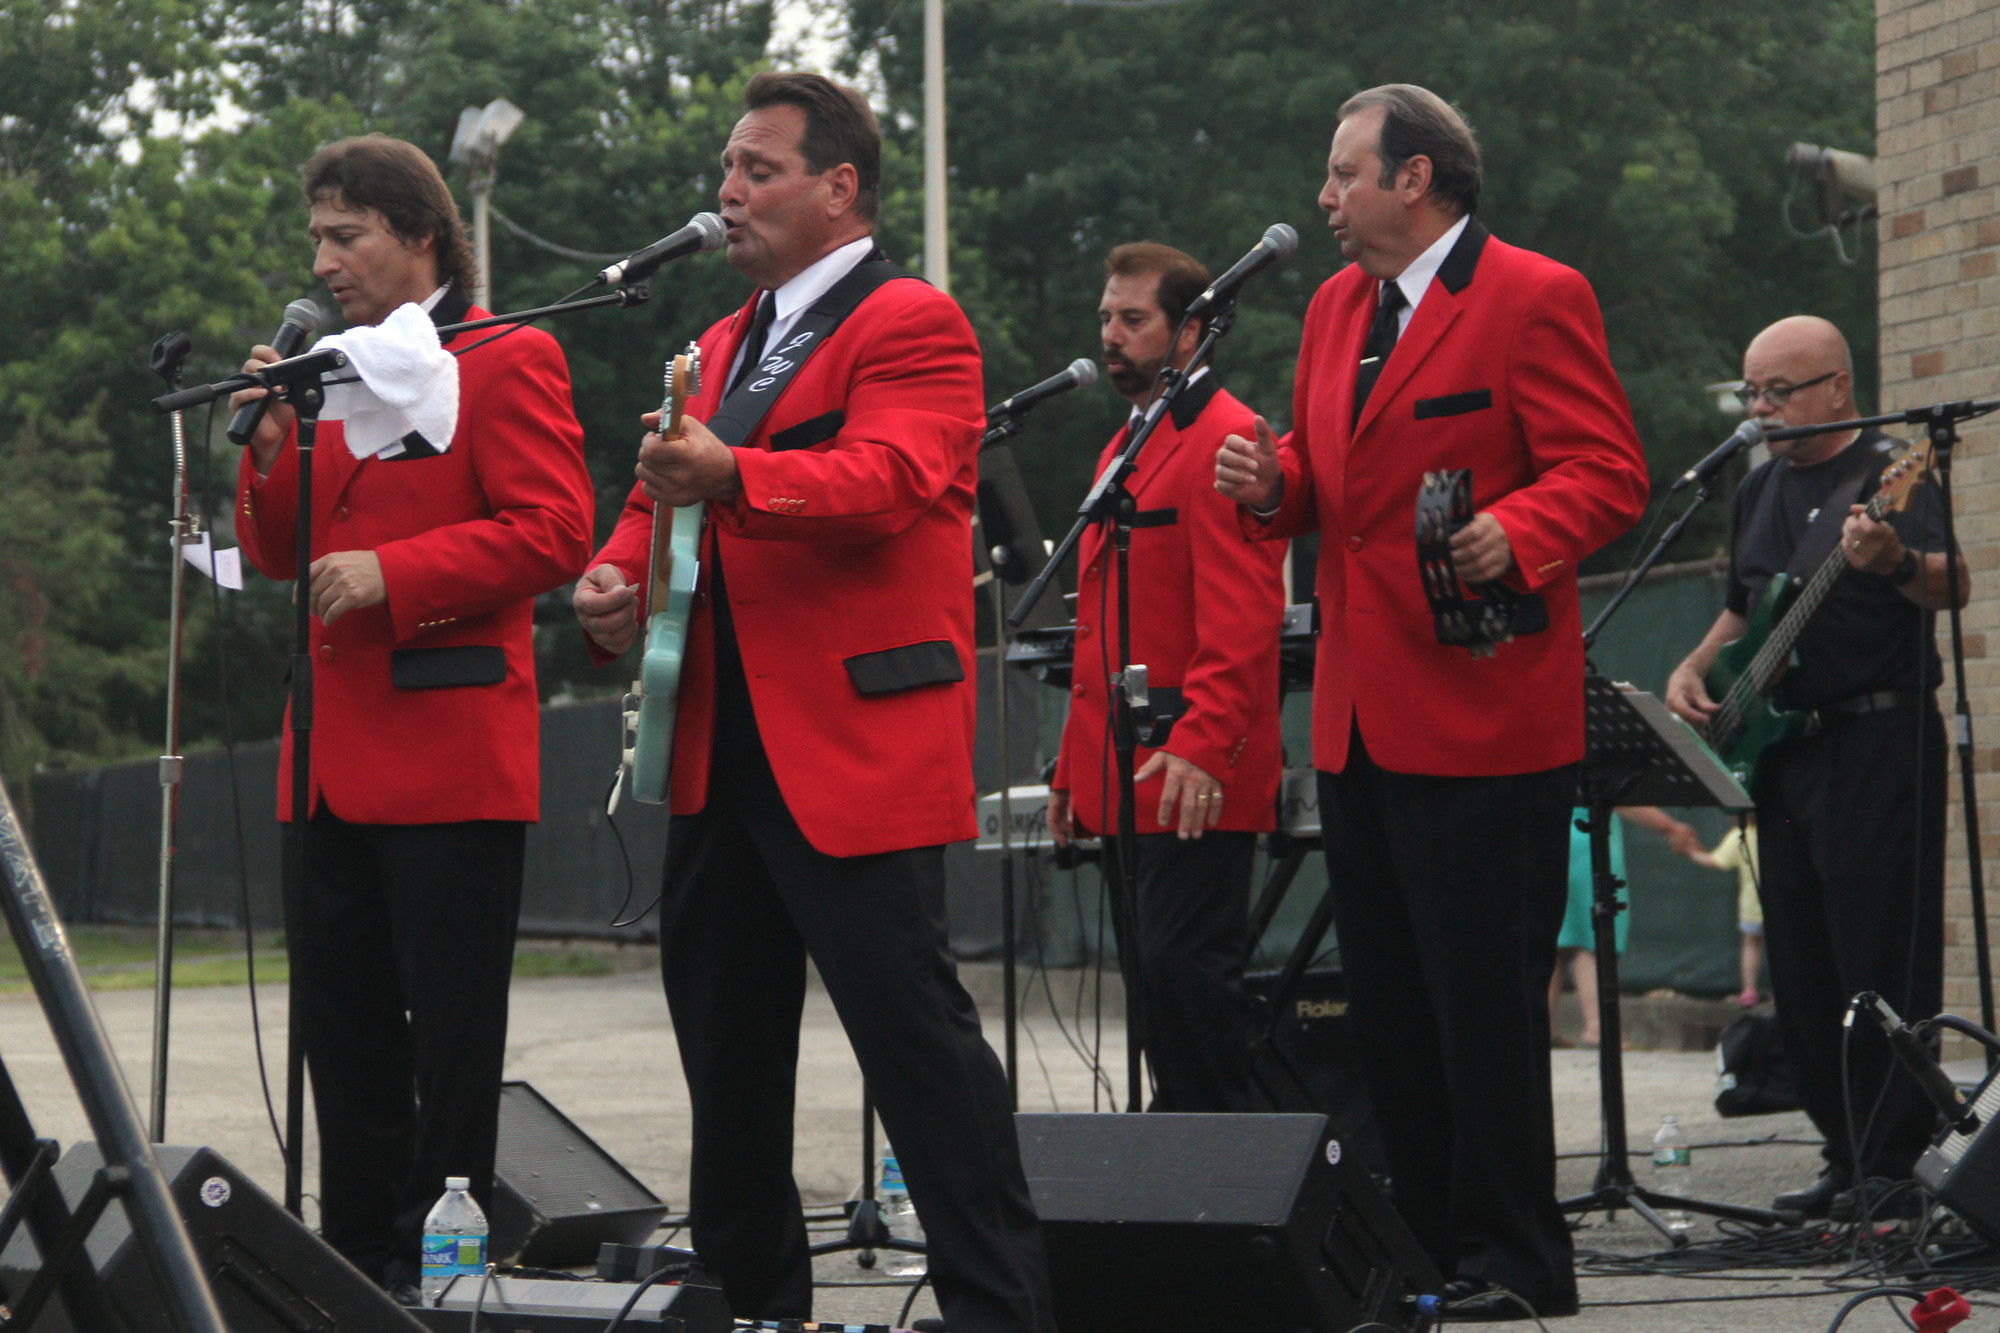 Grant Park in Hewlett was filled with the sounds of the Jersey Four as they performed songs by Frankie Valli and the Four Seasons. The band includes Victor Negron, Joe Celento, Lou Reed and John Ferrulli.